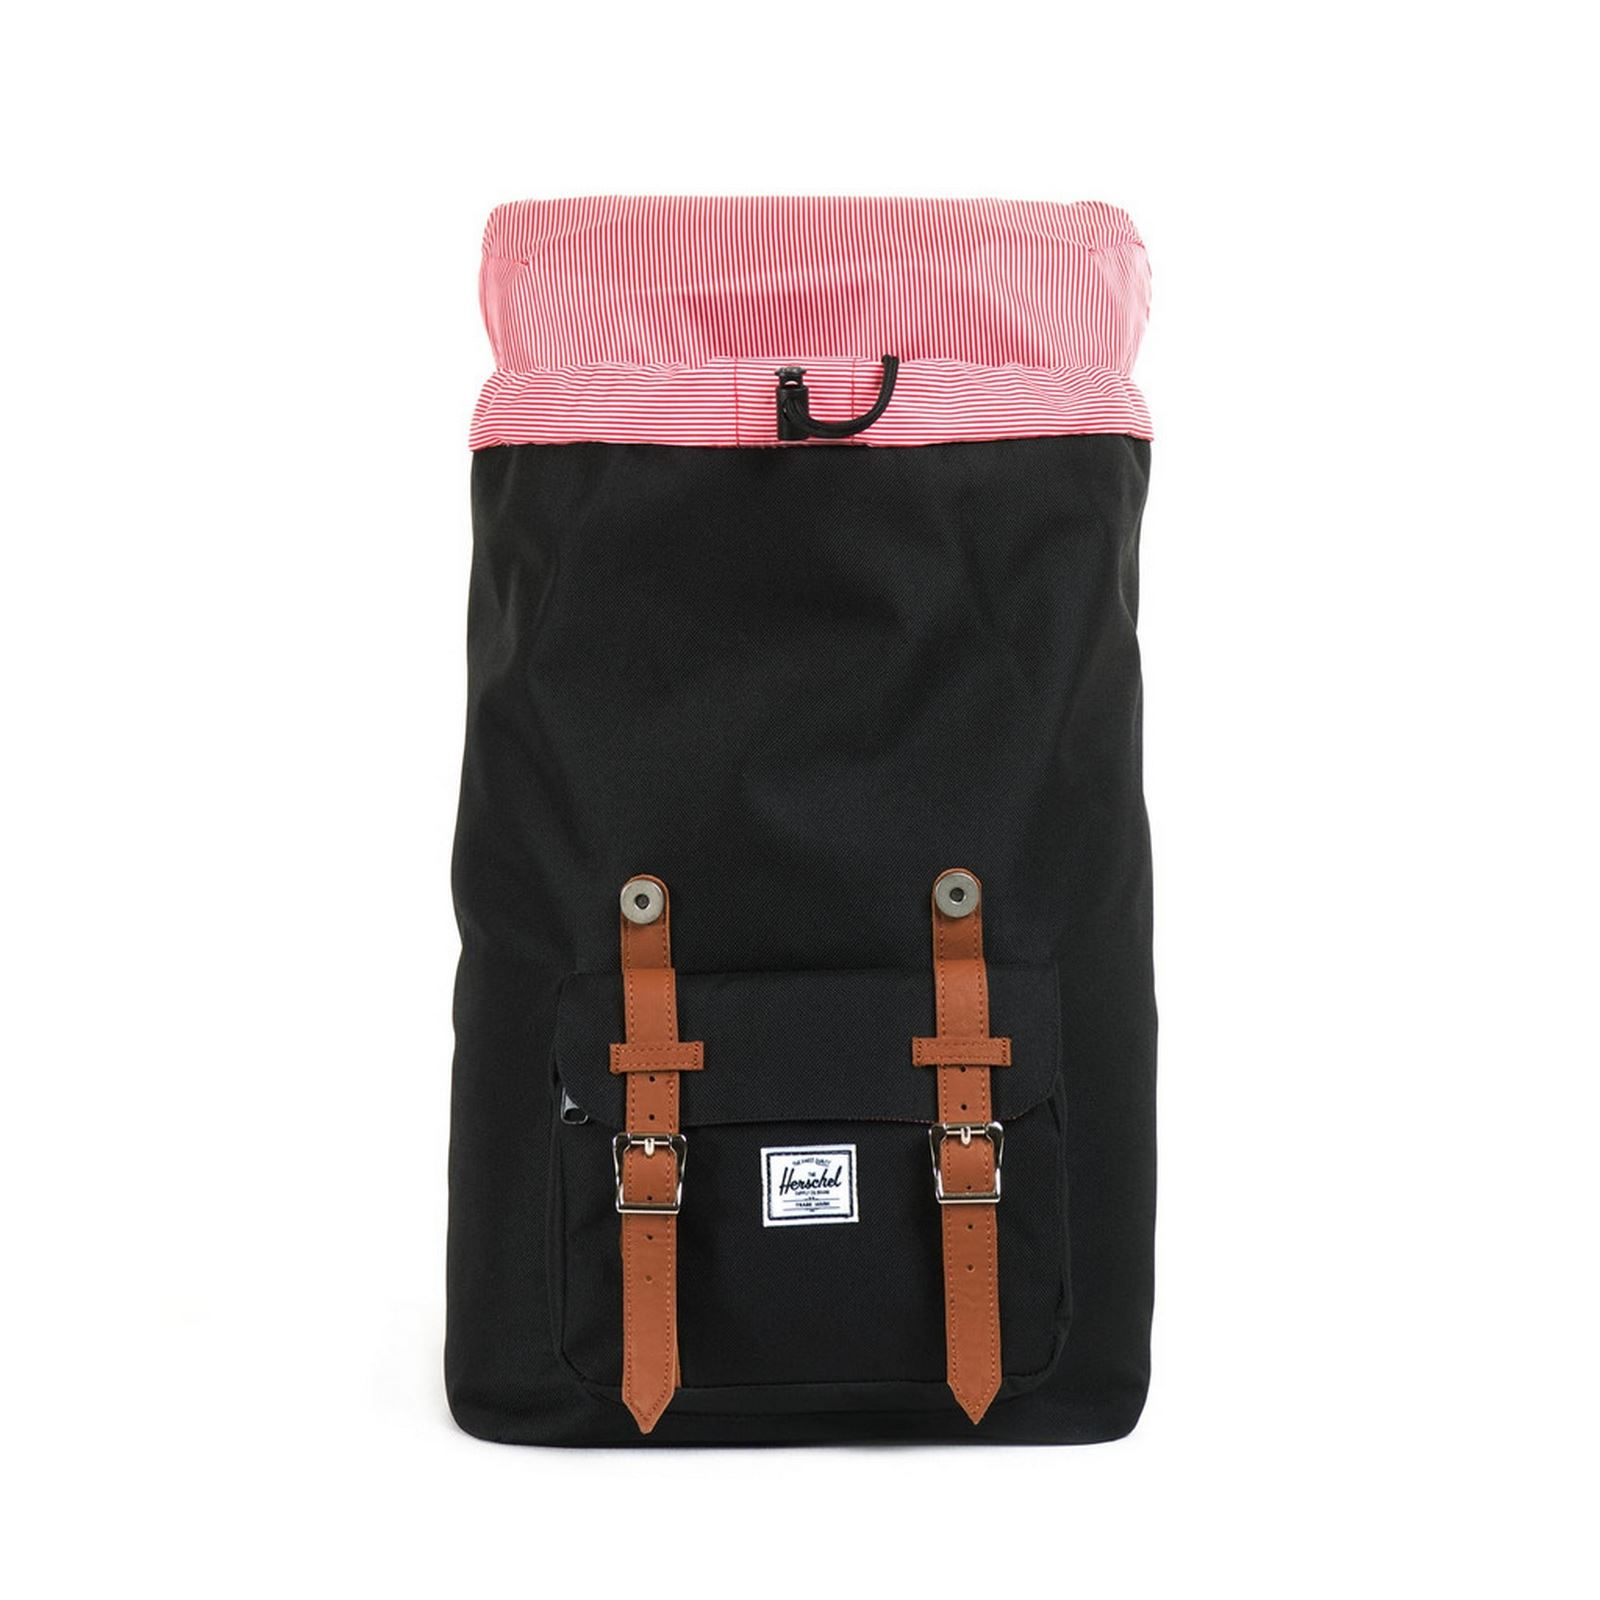 herschel little america rucksack schwarz brandalley. Black Bedroom Furniture Sets. Home Design Ideas